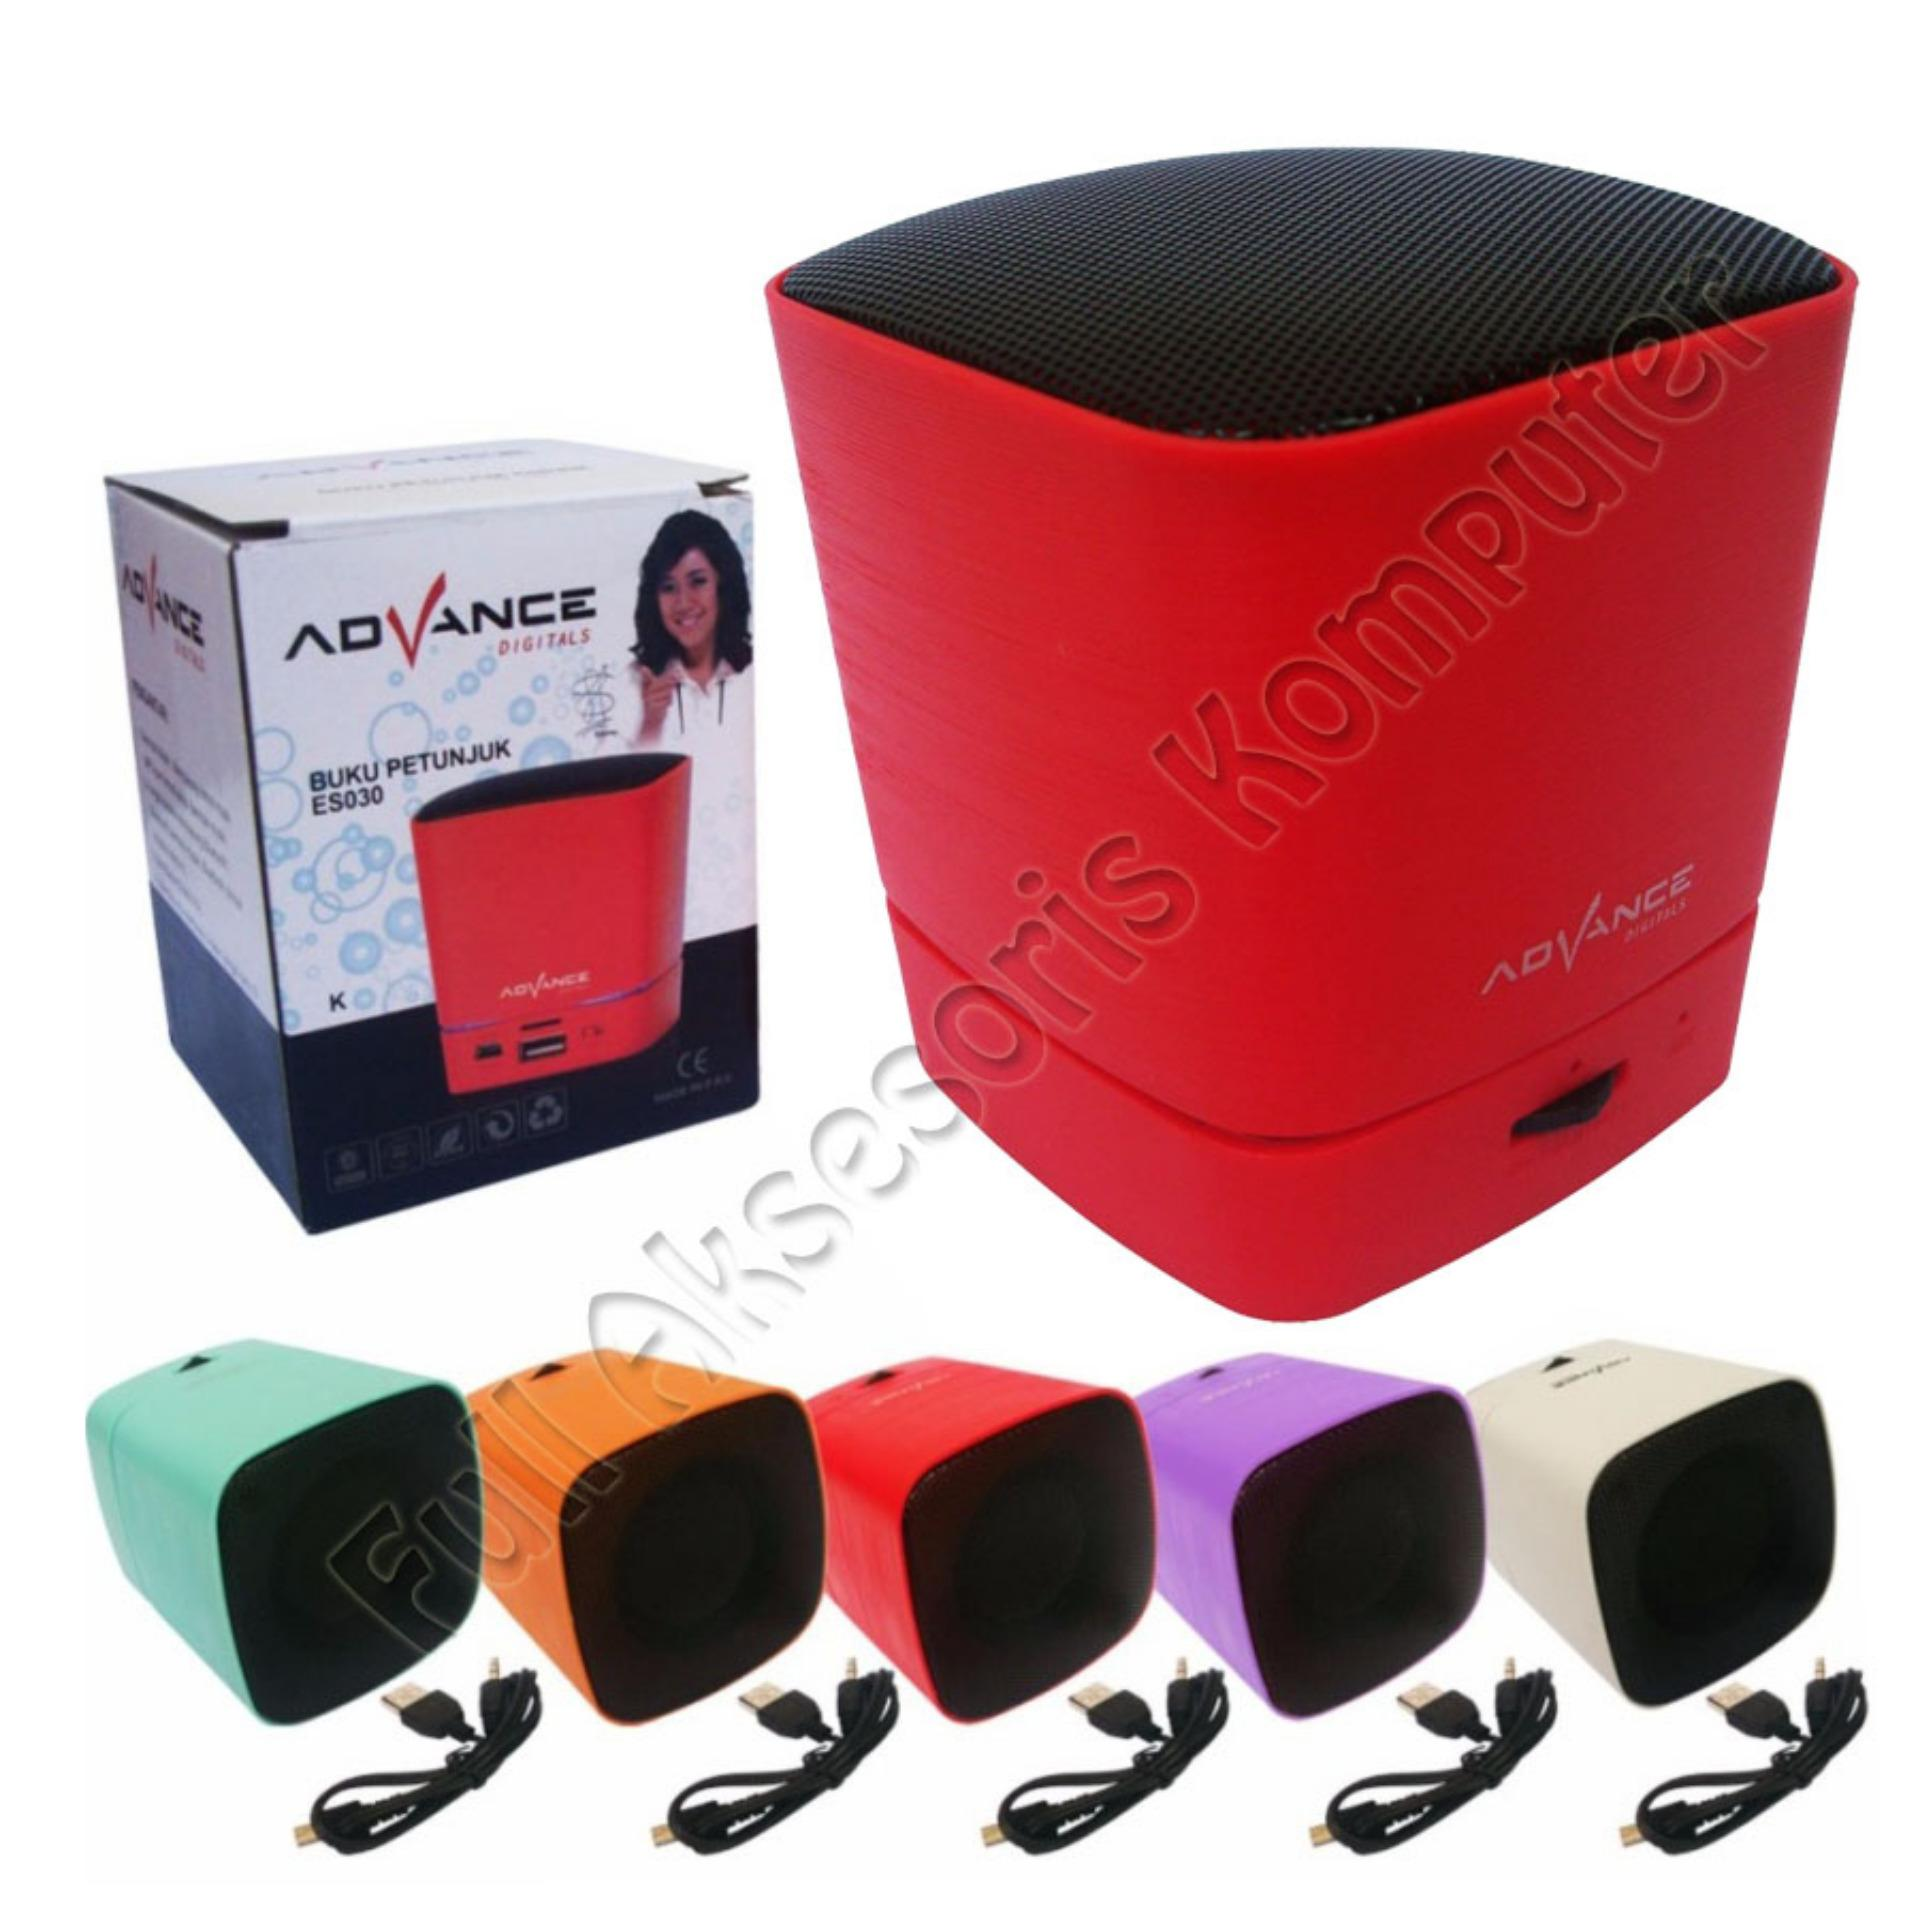 Beli Advance Mini Speaker Portable Bluetooth Es030K Merah Cicil